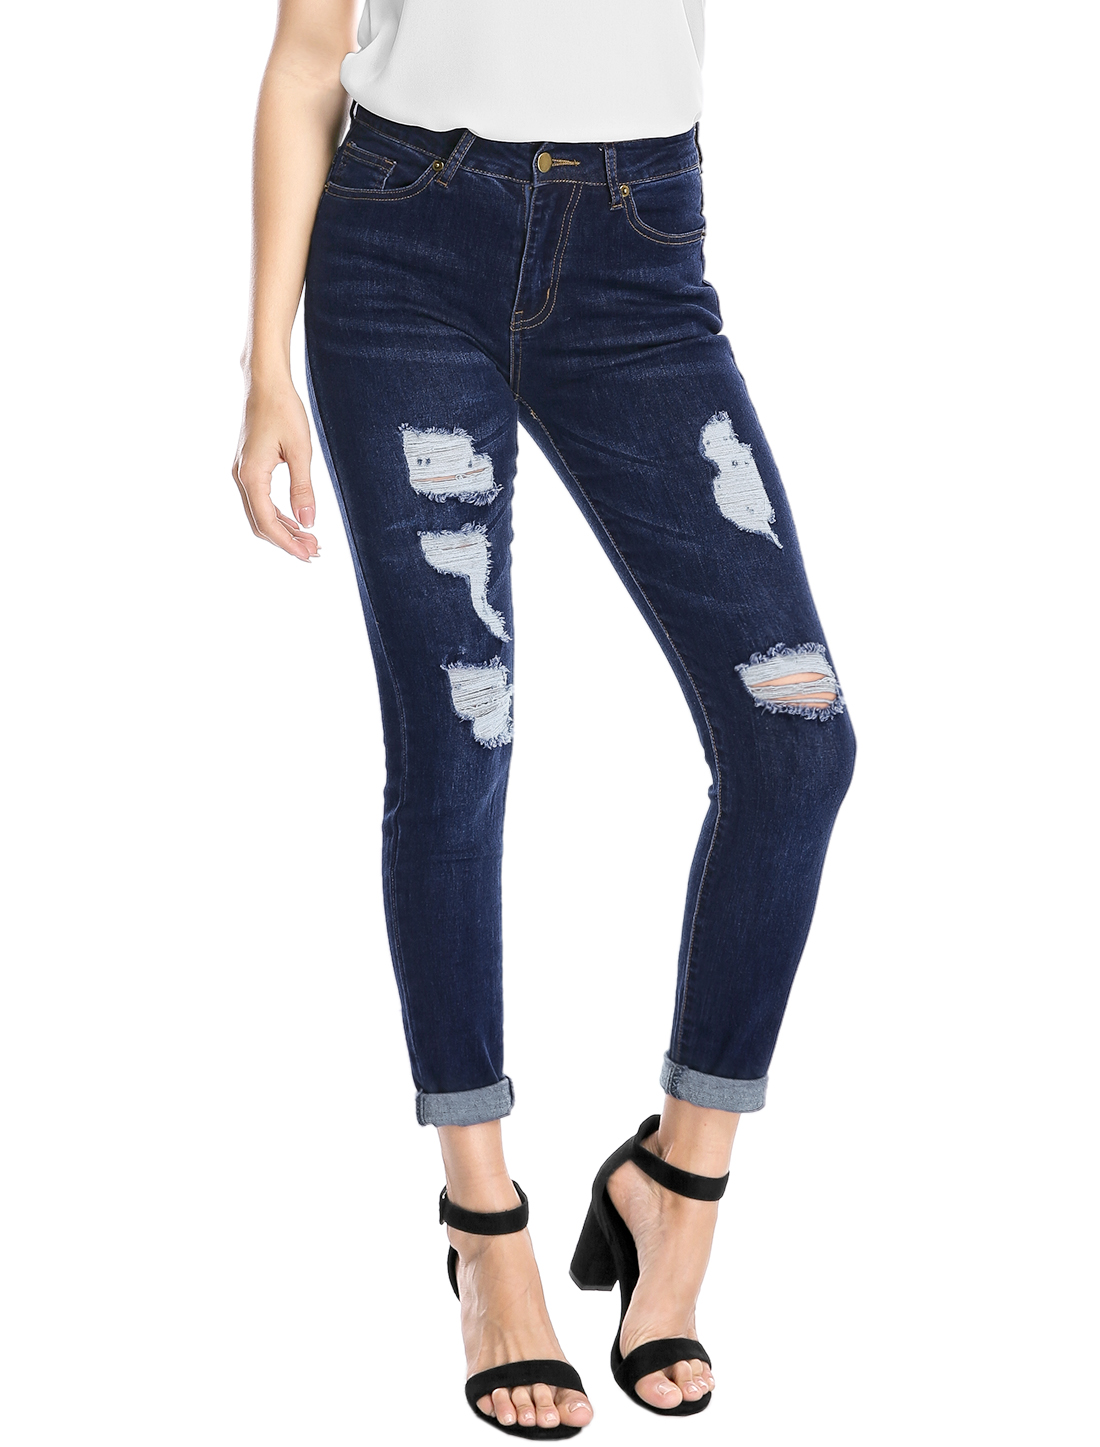 Women Distressed Design Mid Rise Washed Denim Skinny Jeans Blue S